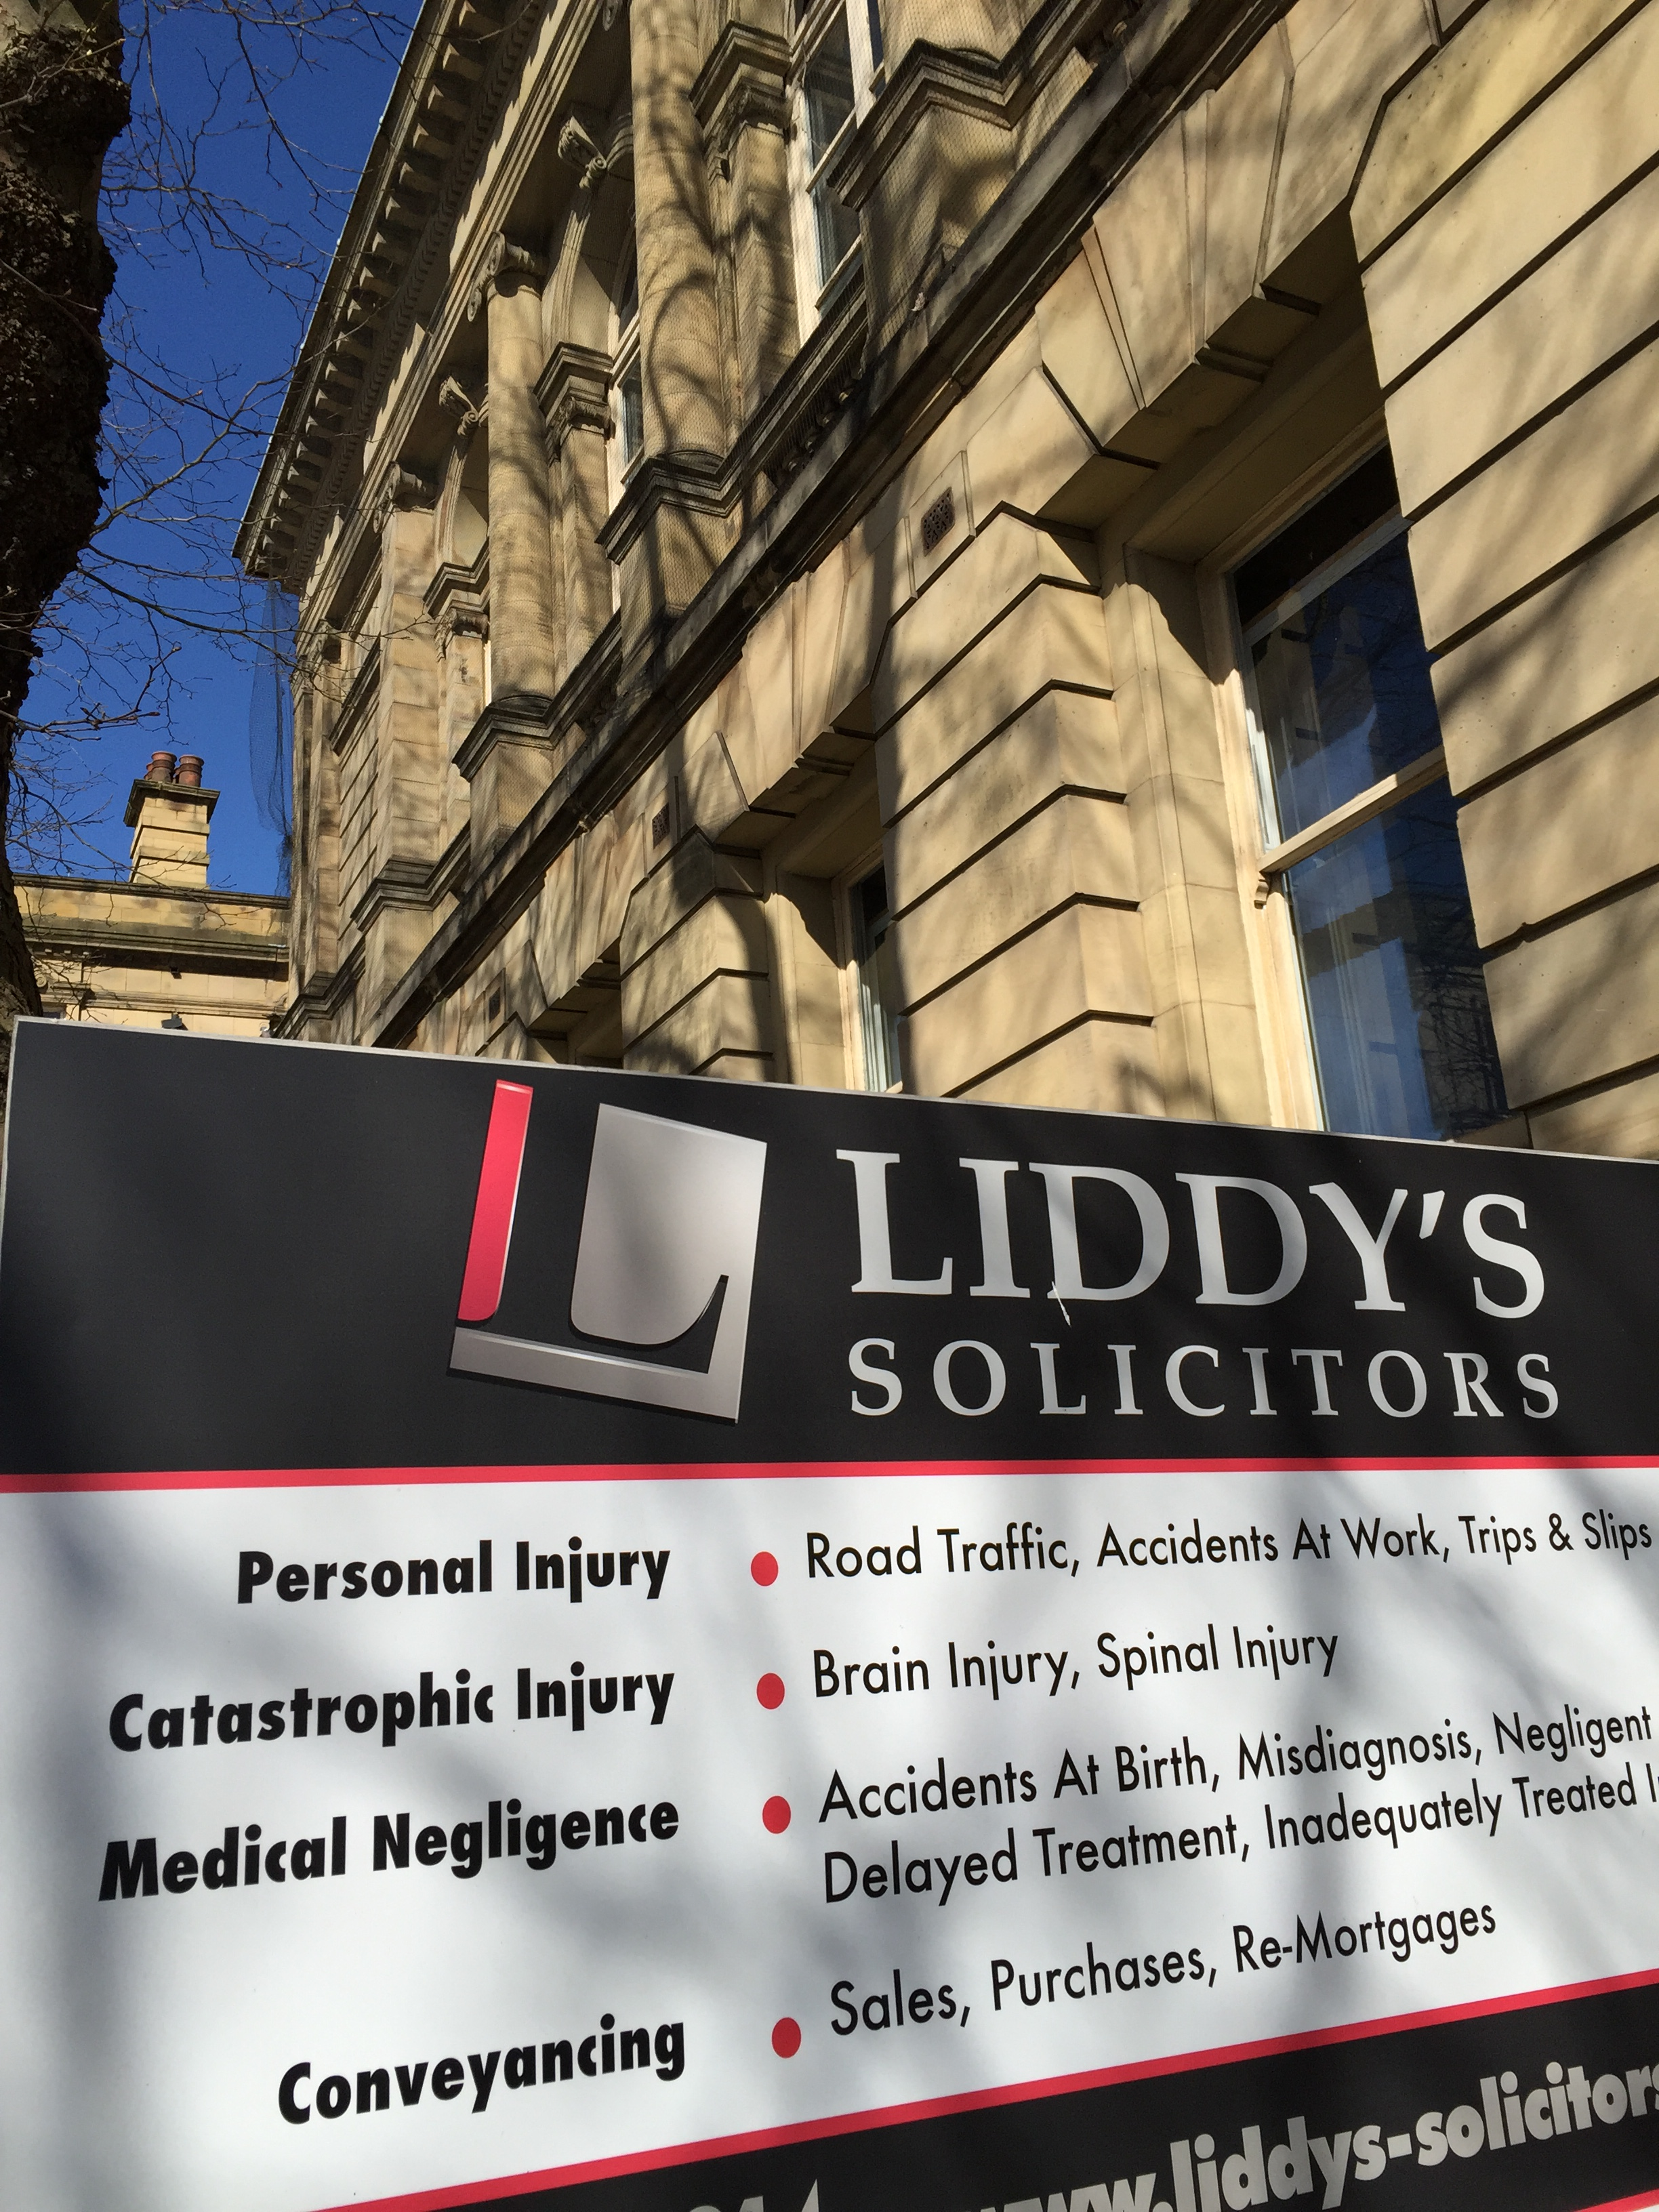 Personal Injury Reforms